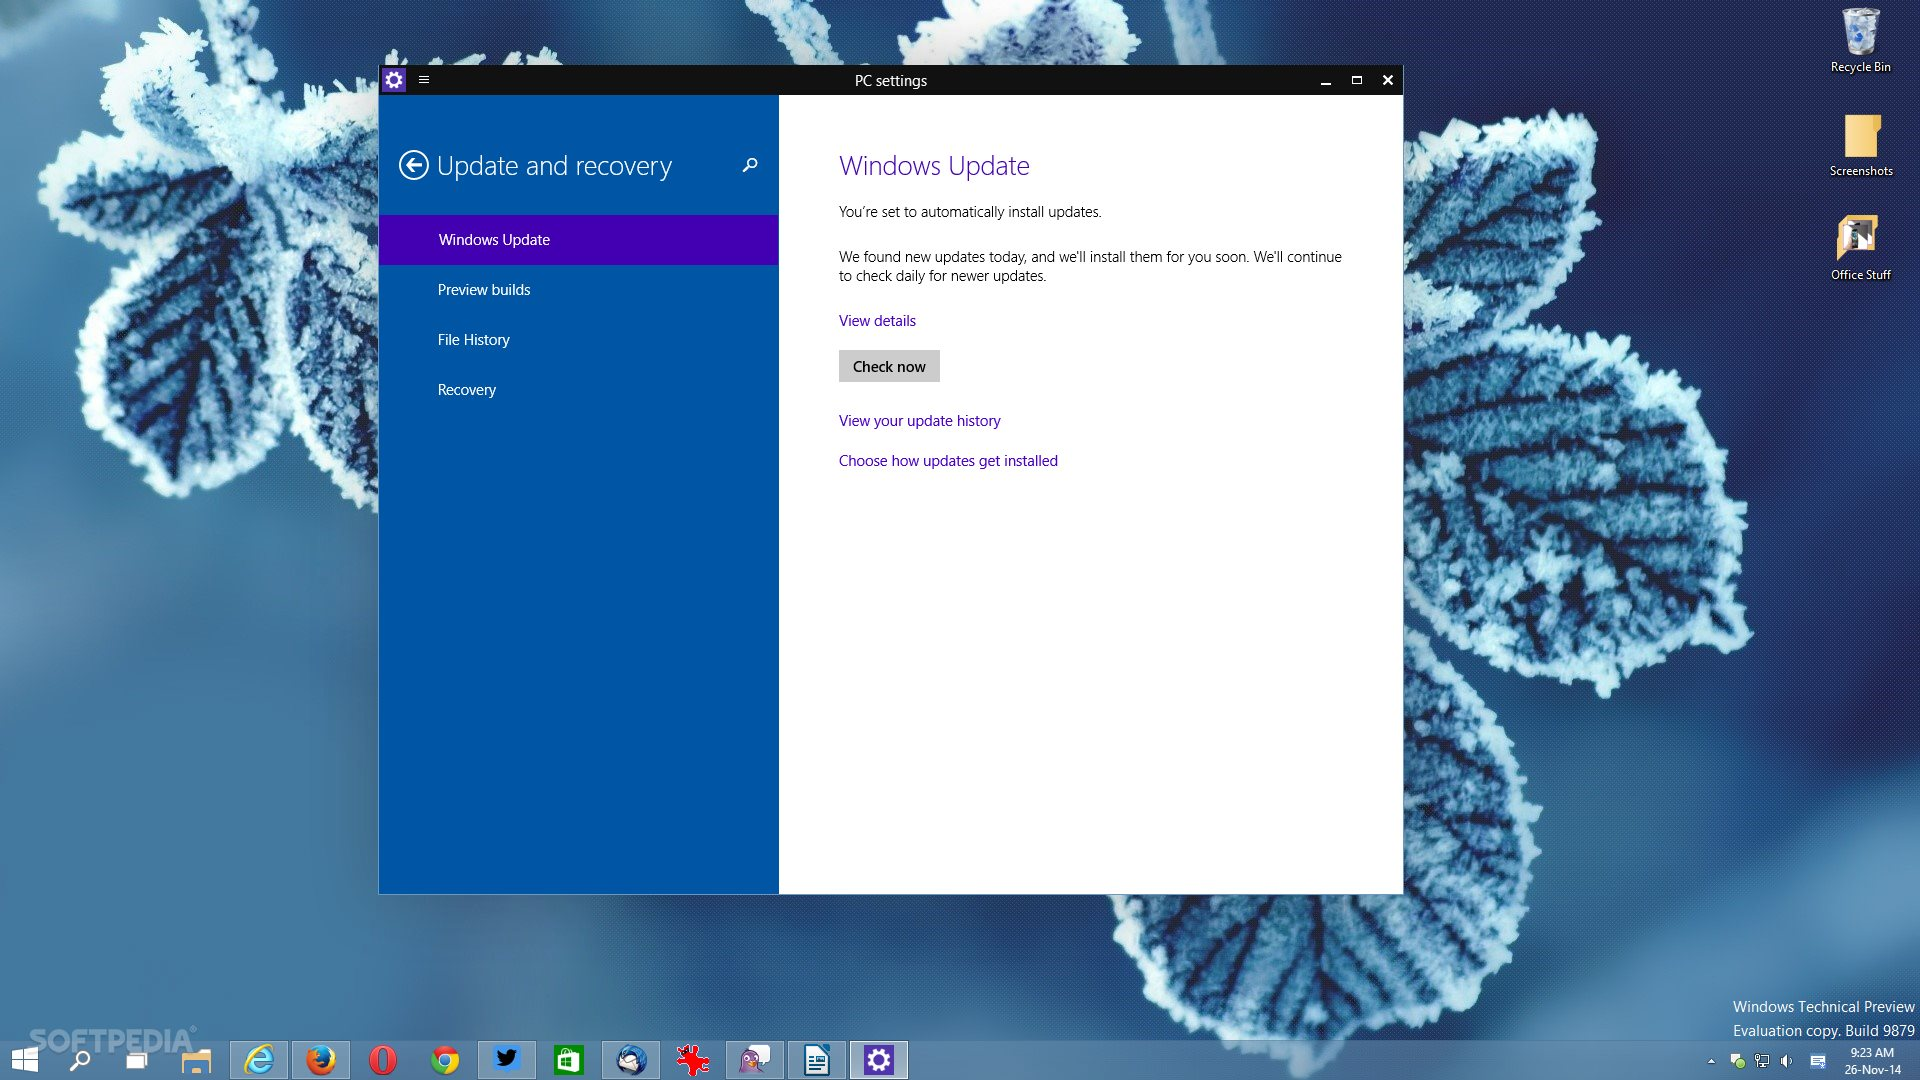 Windows 10 Users Receive Internet Explorer Update for Flash Player